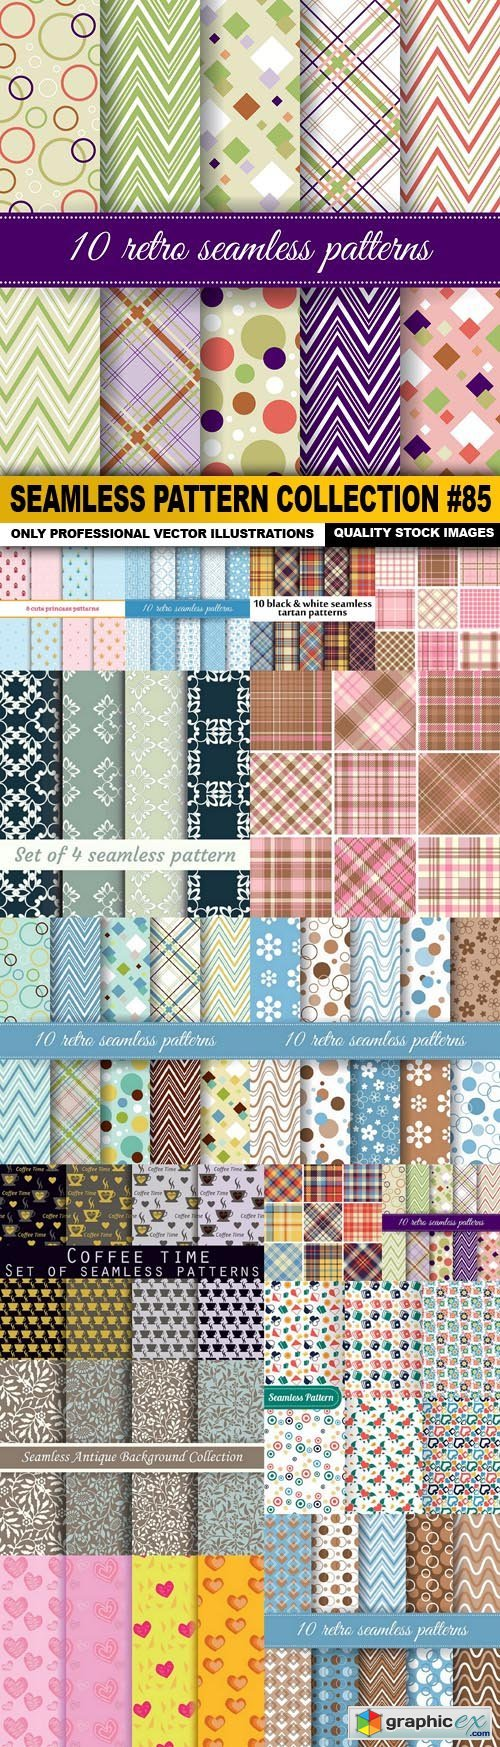 Seamless Pattern Collection #85